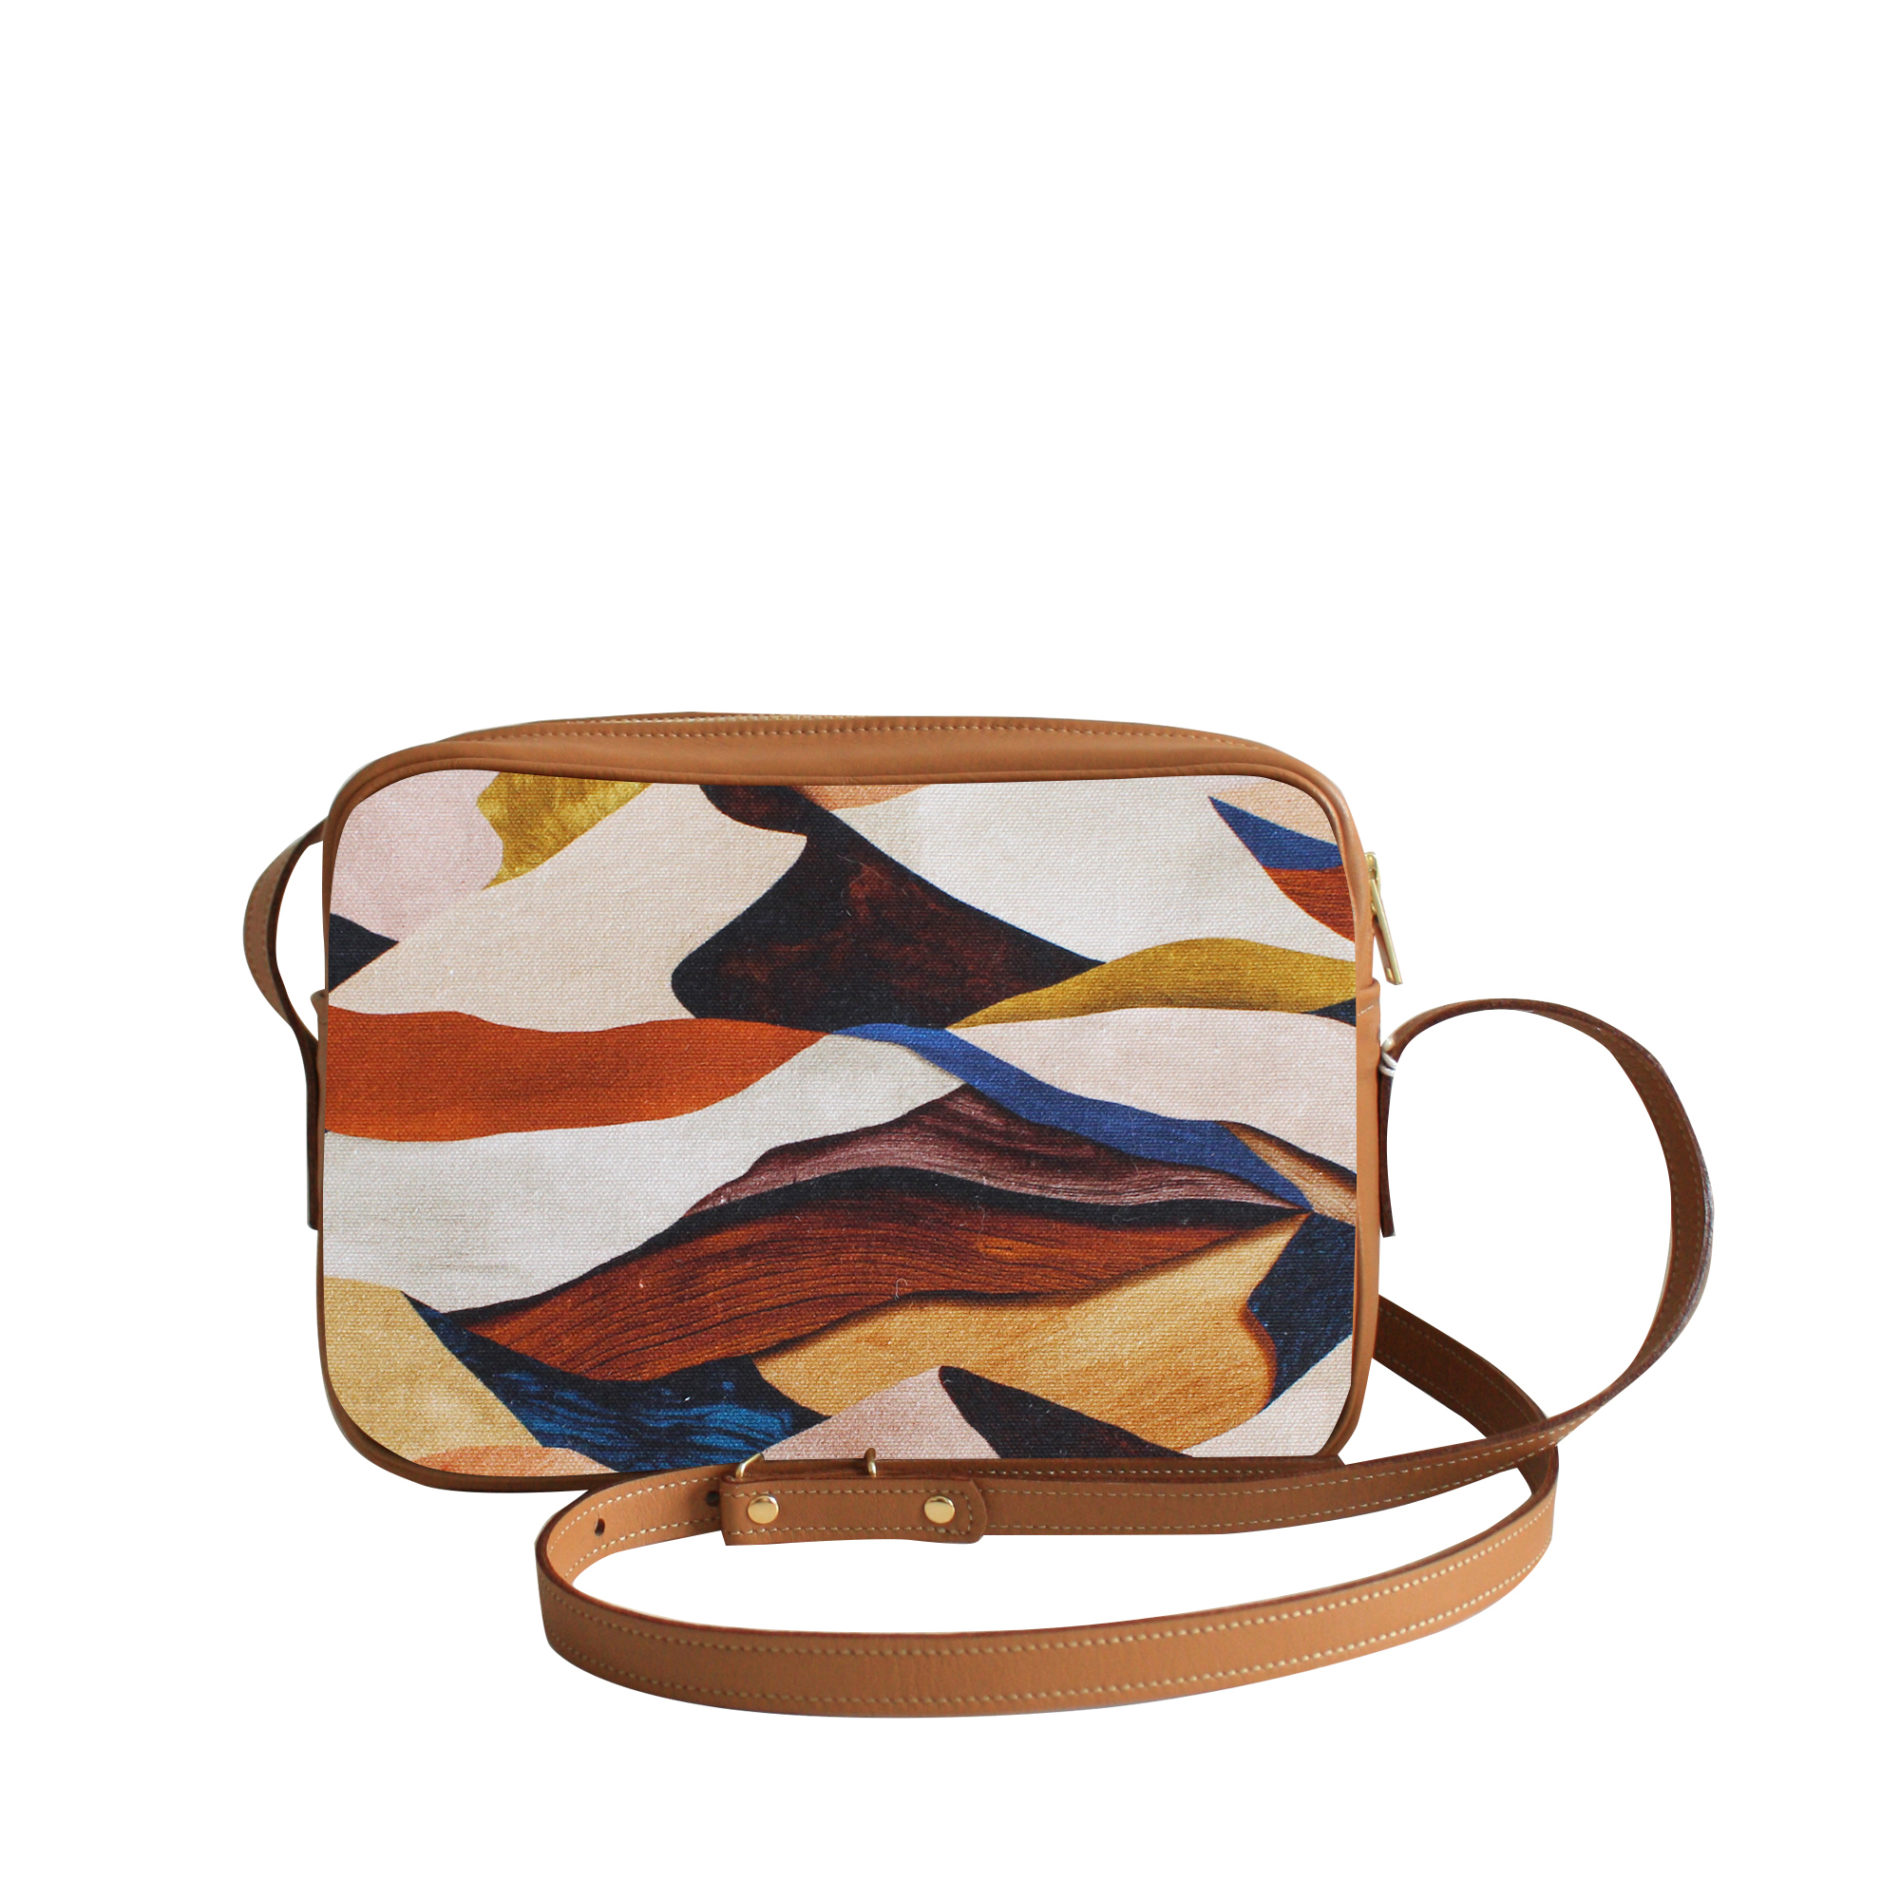 Sac à main Crossbody Graphique n°13 - Cuir Camel